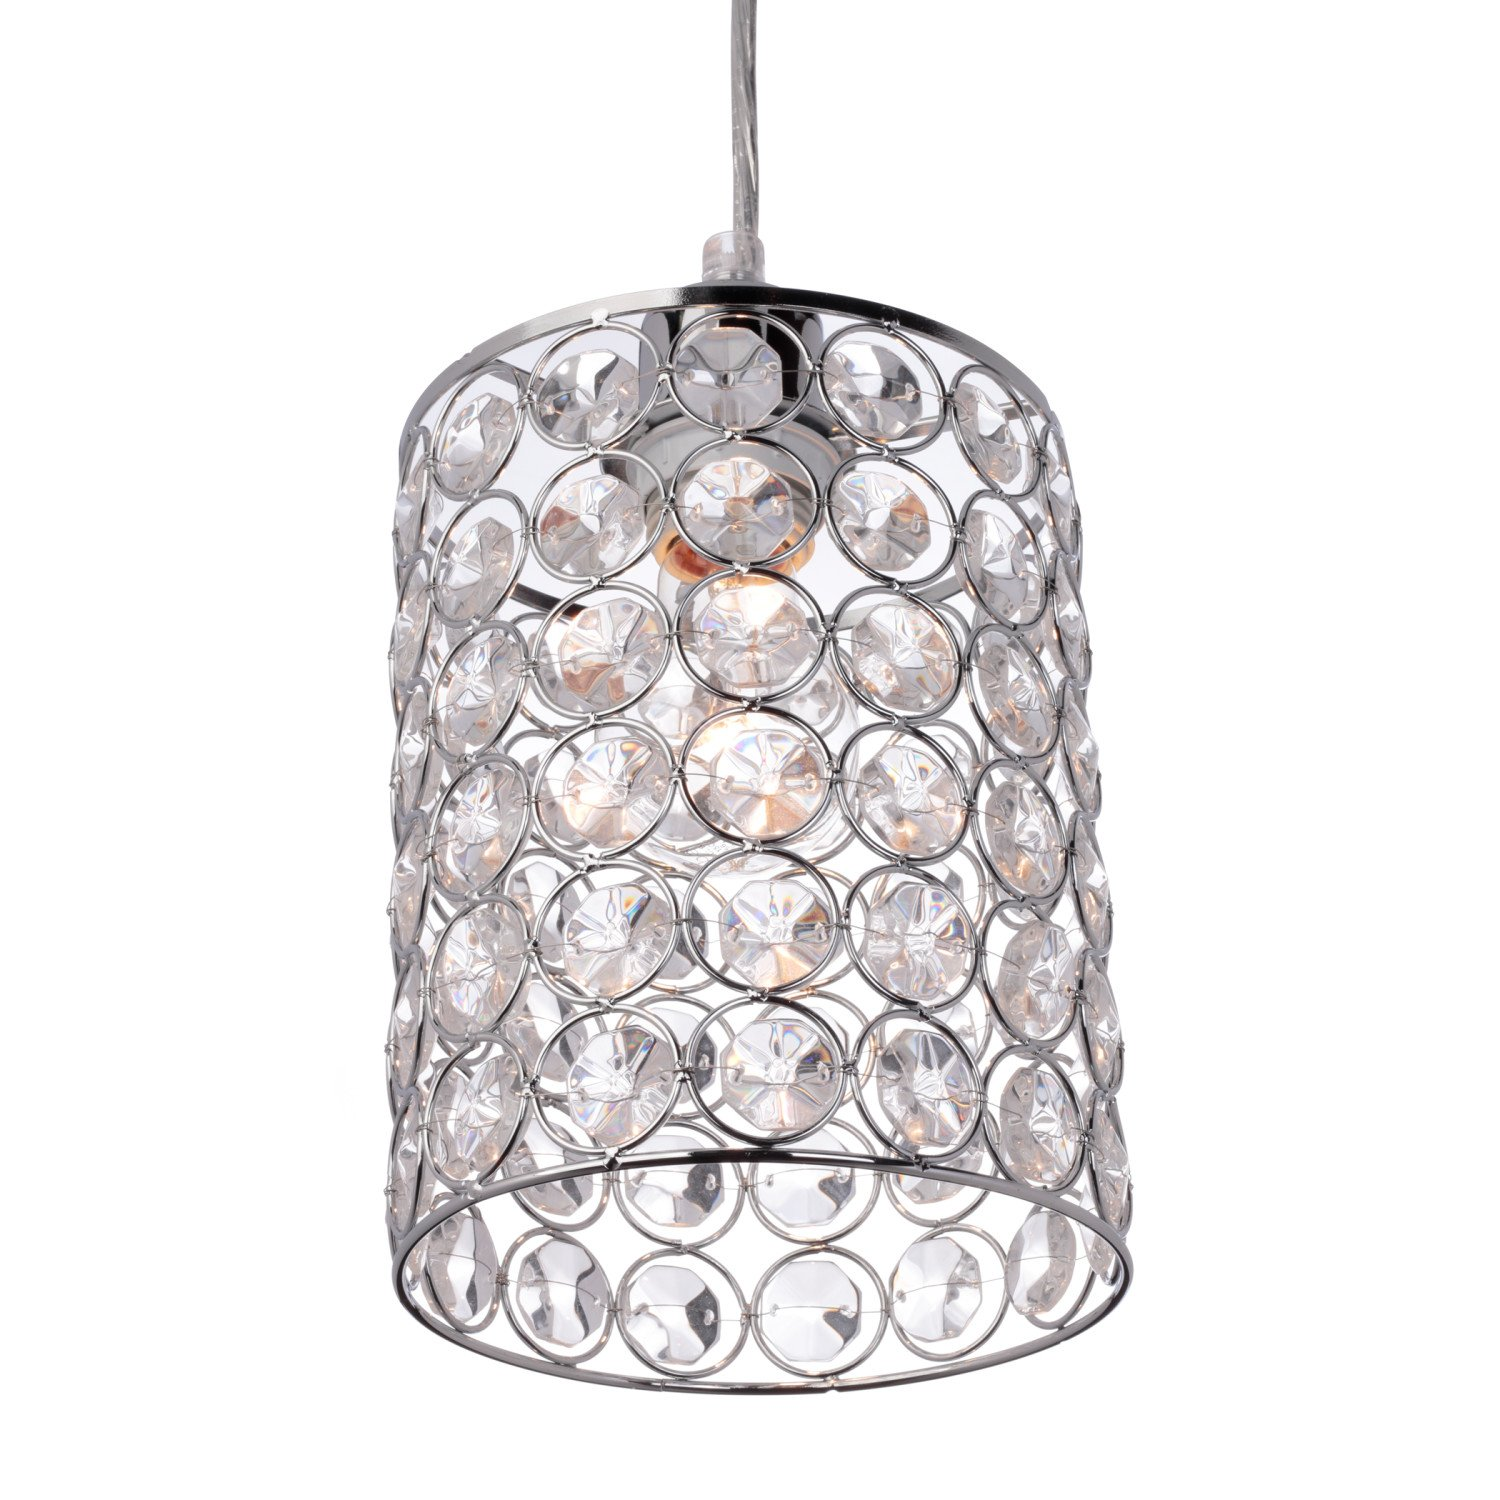 Globe Electric Trenton 1-Light Mini Pendant, Caged Crystal Shade, Polished Chrome Finish 65012